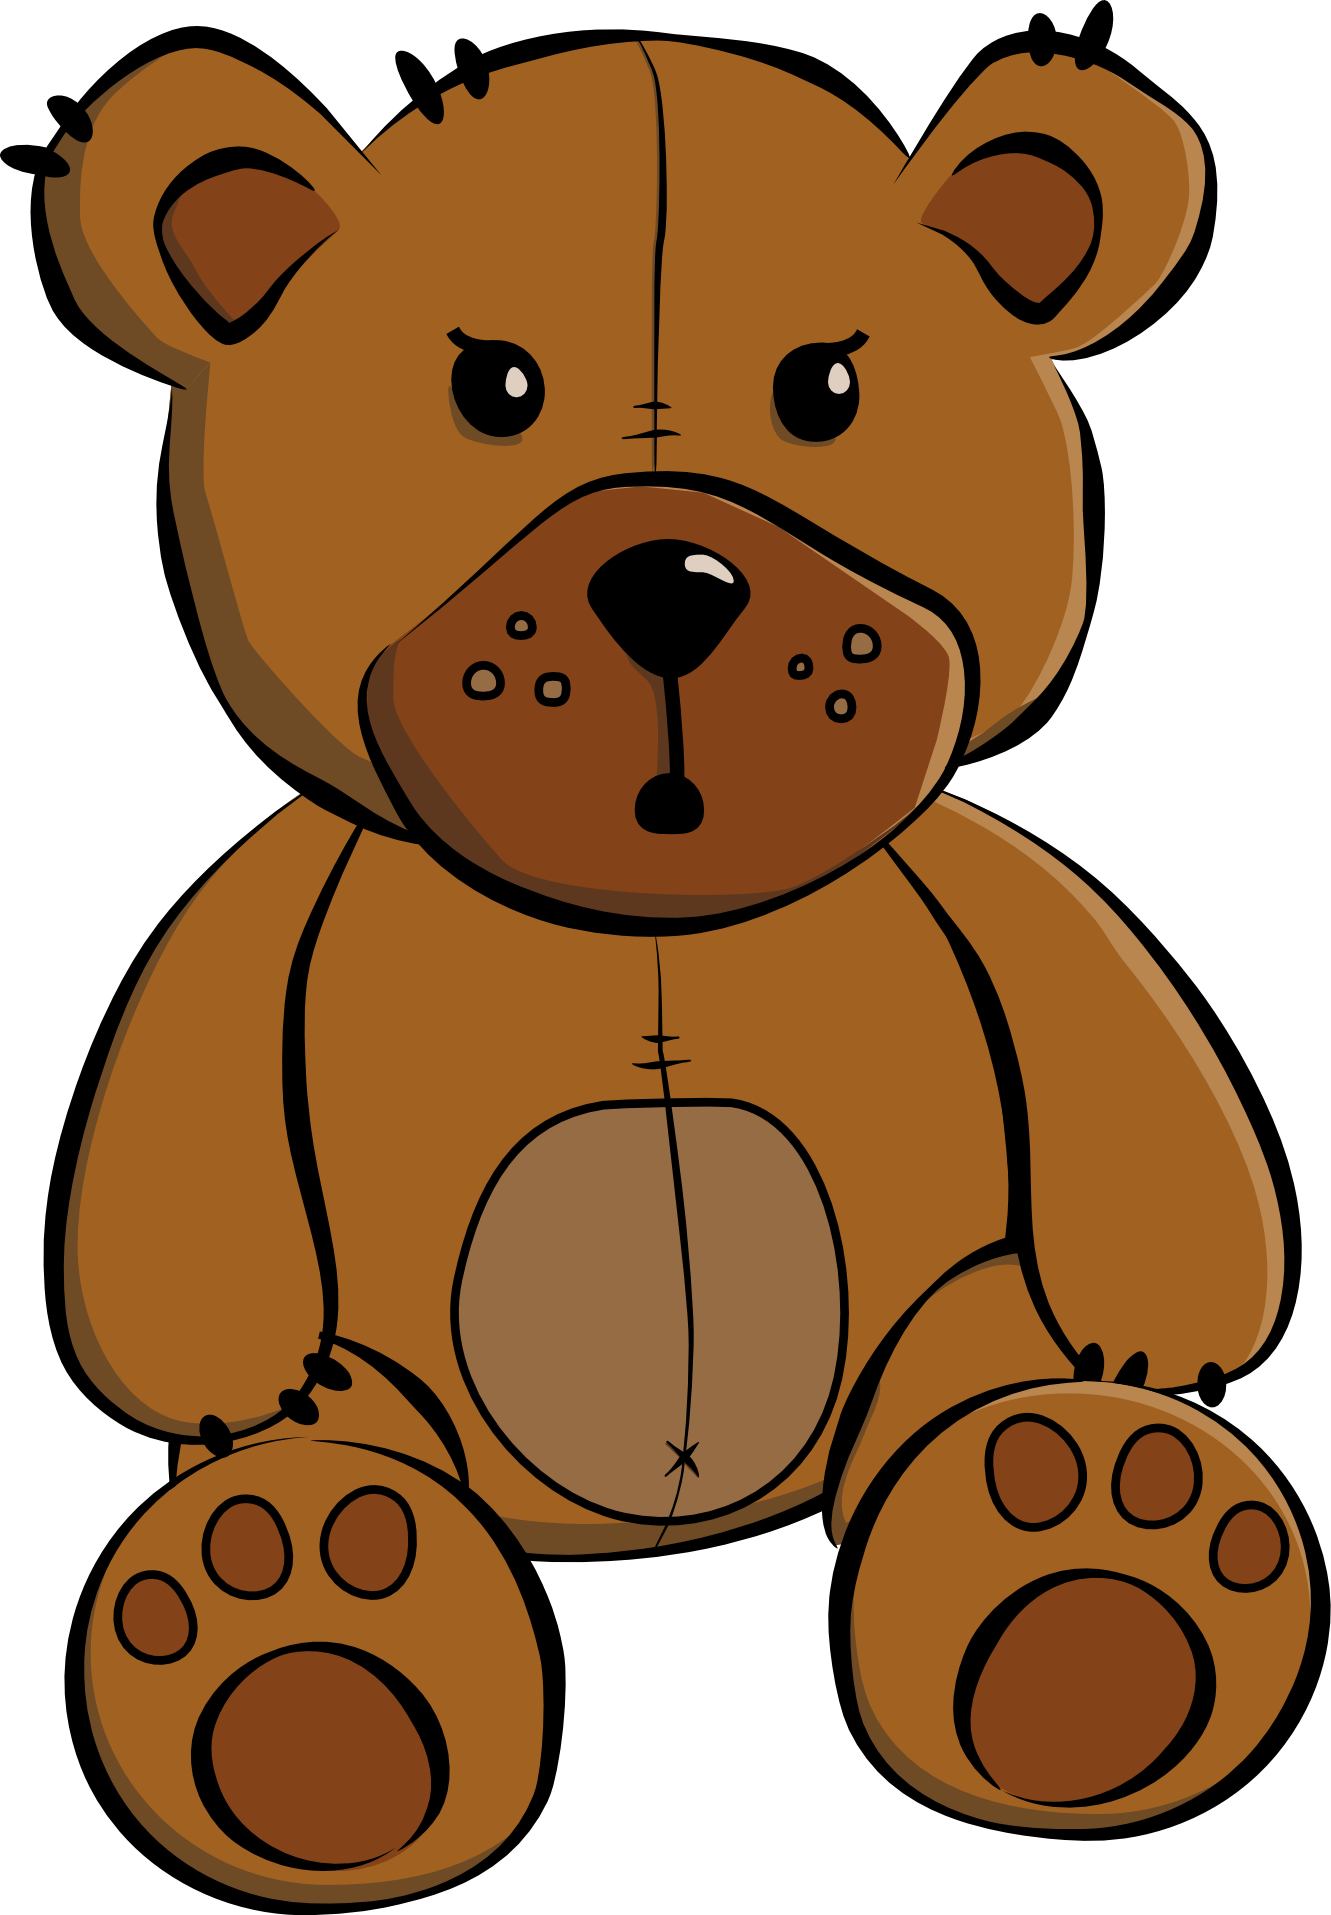 Free Bear Images Free, Download Free Clip Art, Free Clip Art.